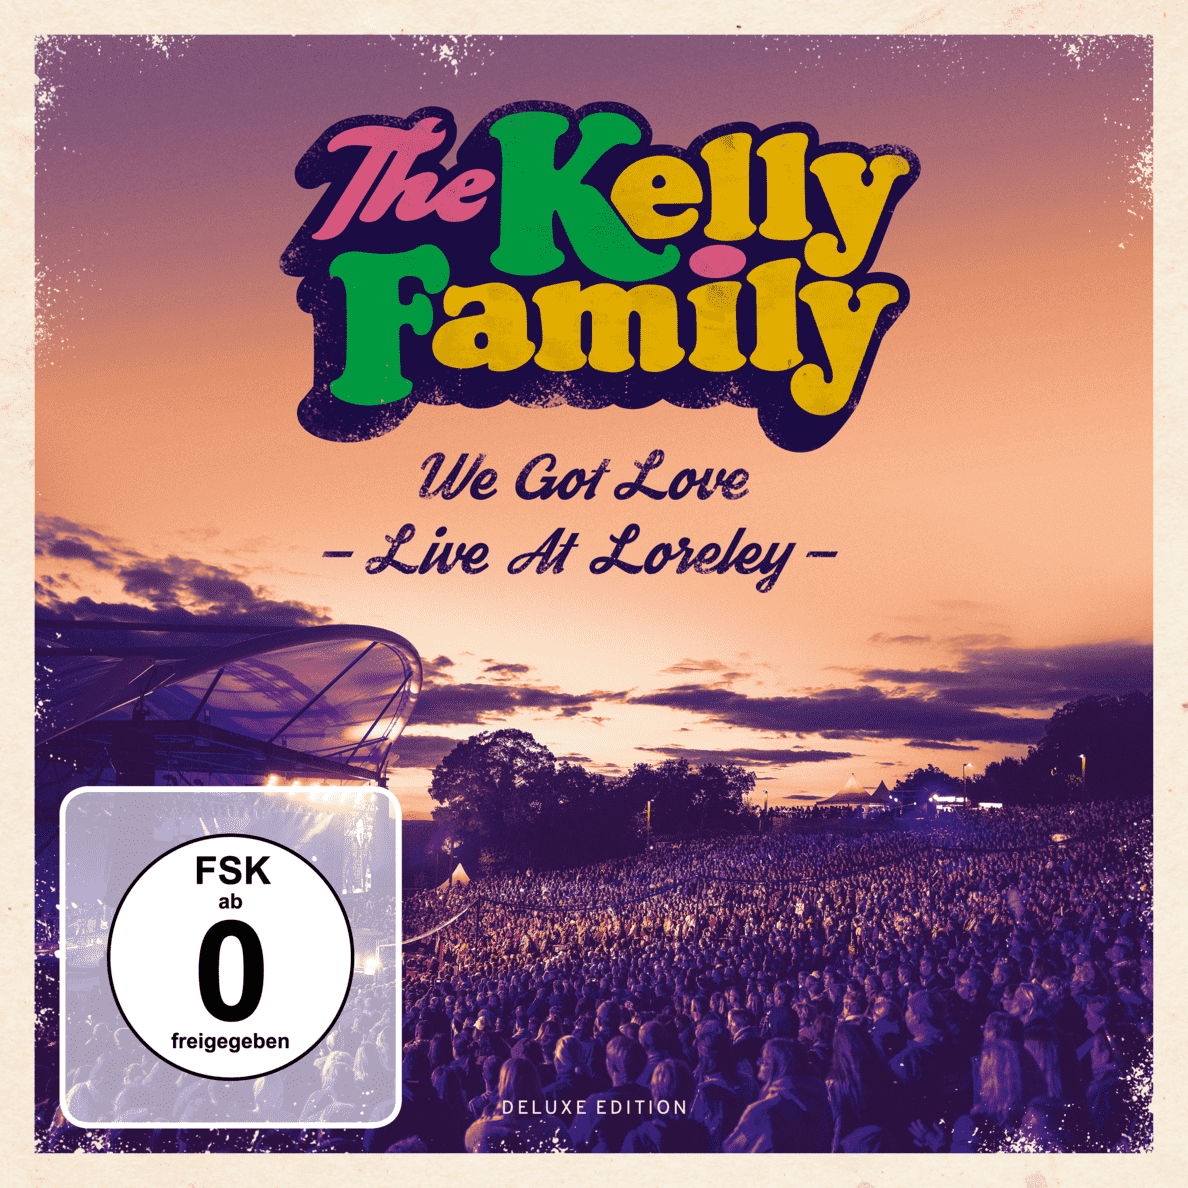 The Kelly Family - We Got Love Live Loreley (Deluxe Edition) - (CD + DVD Video)